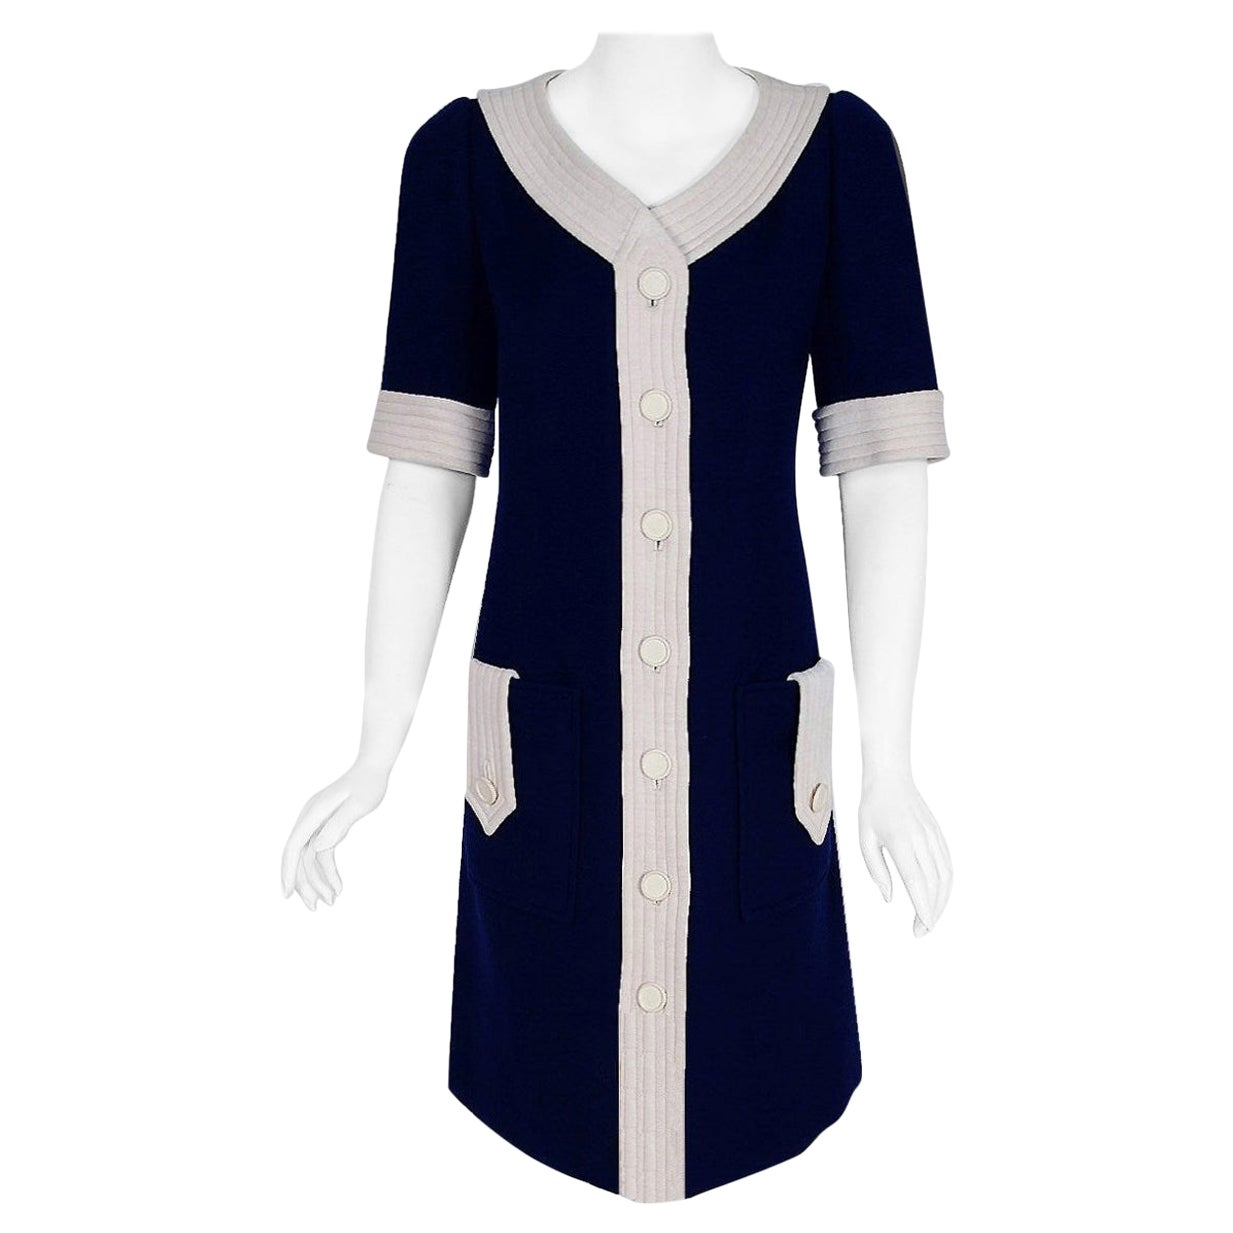 Vintage 1967 Courreges Couture Navy & White Wool Block Color Mod Space-Age Dress